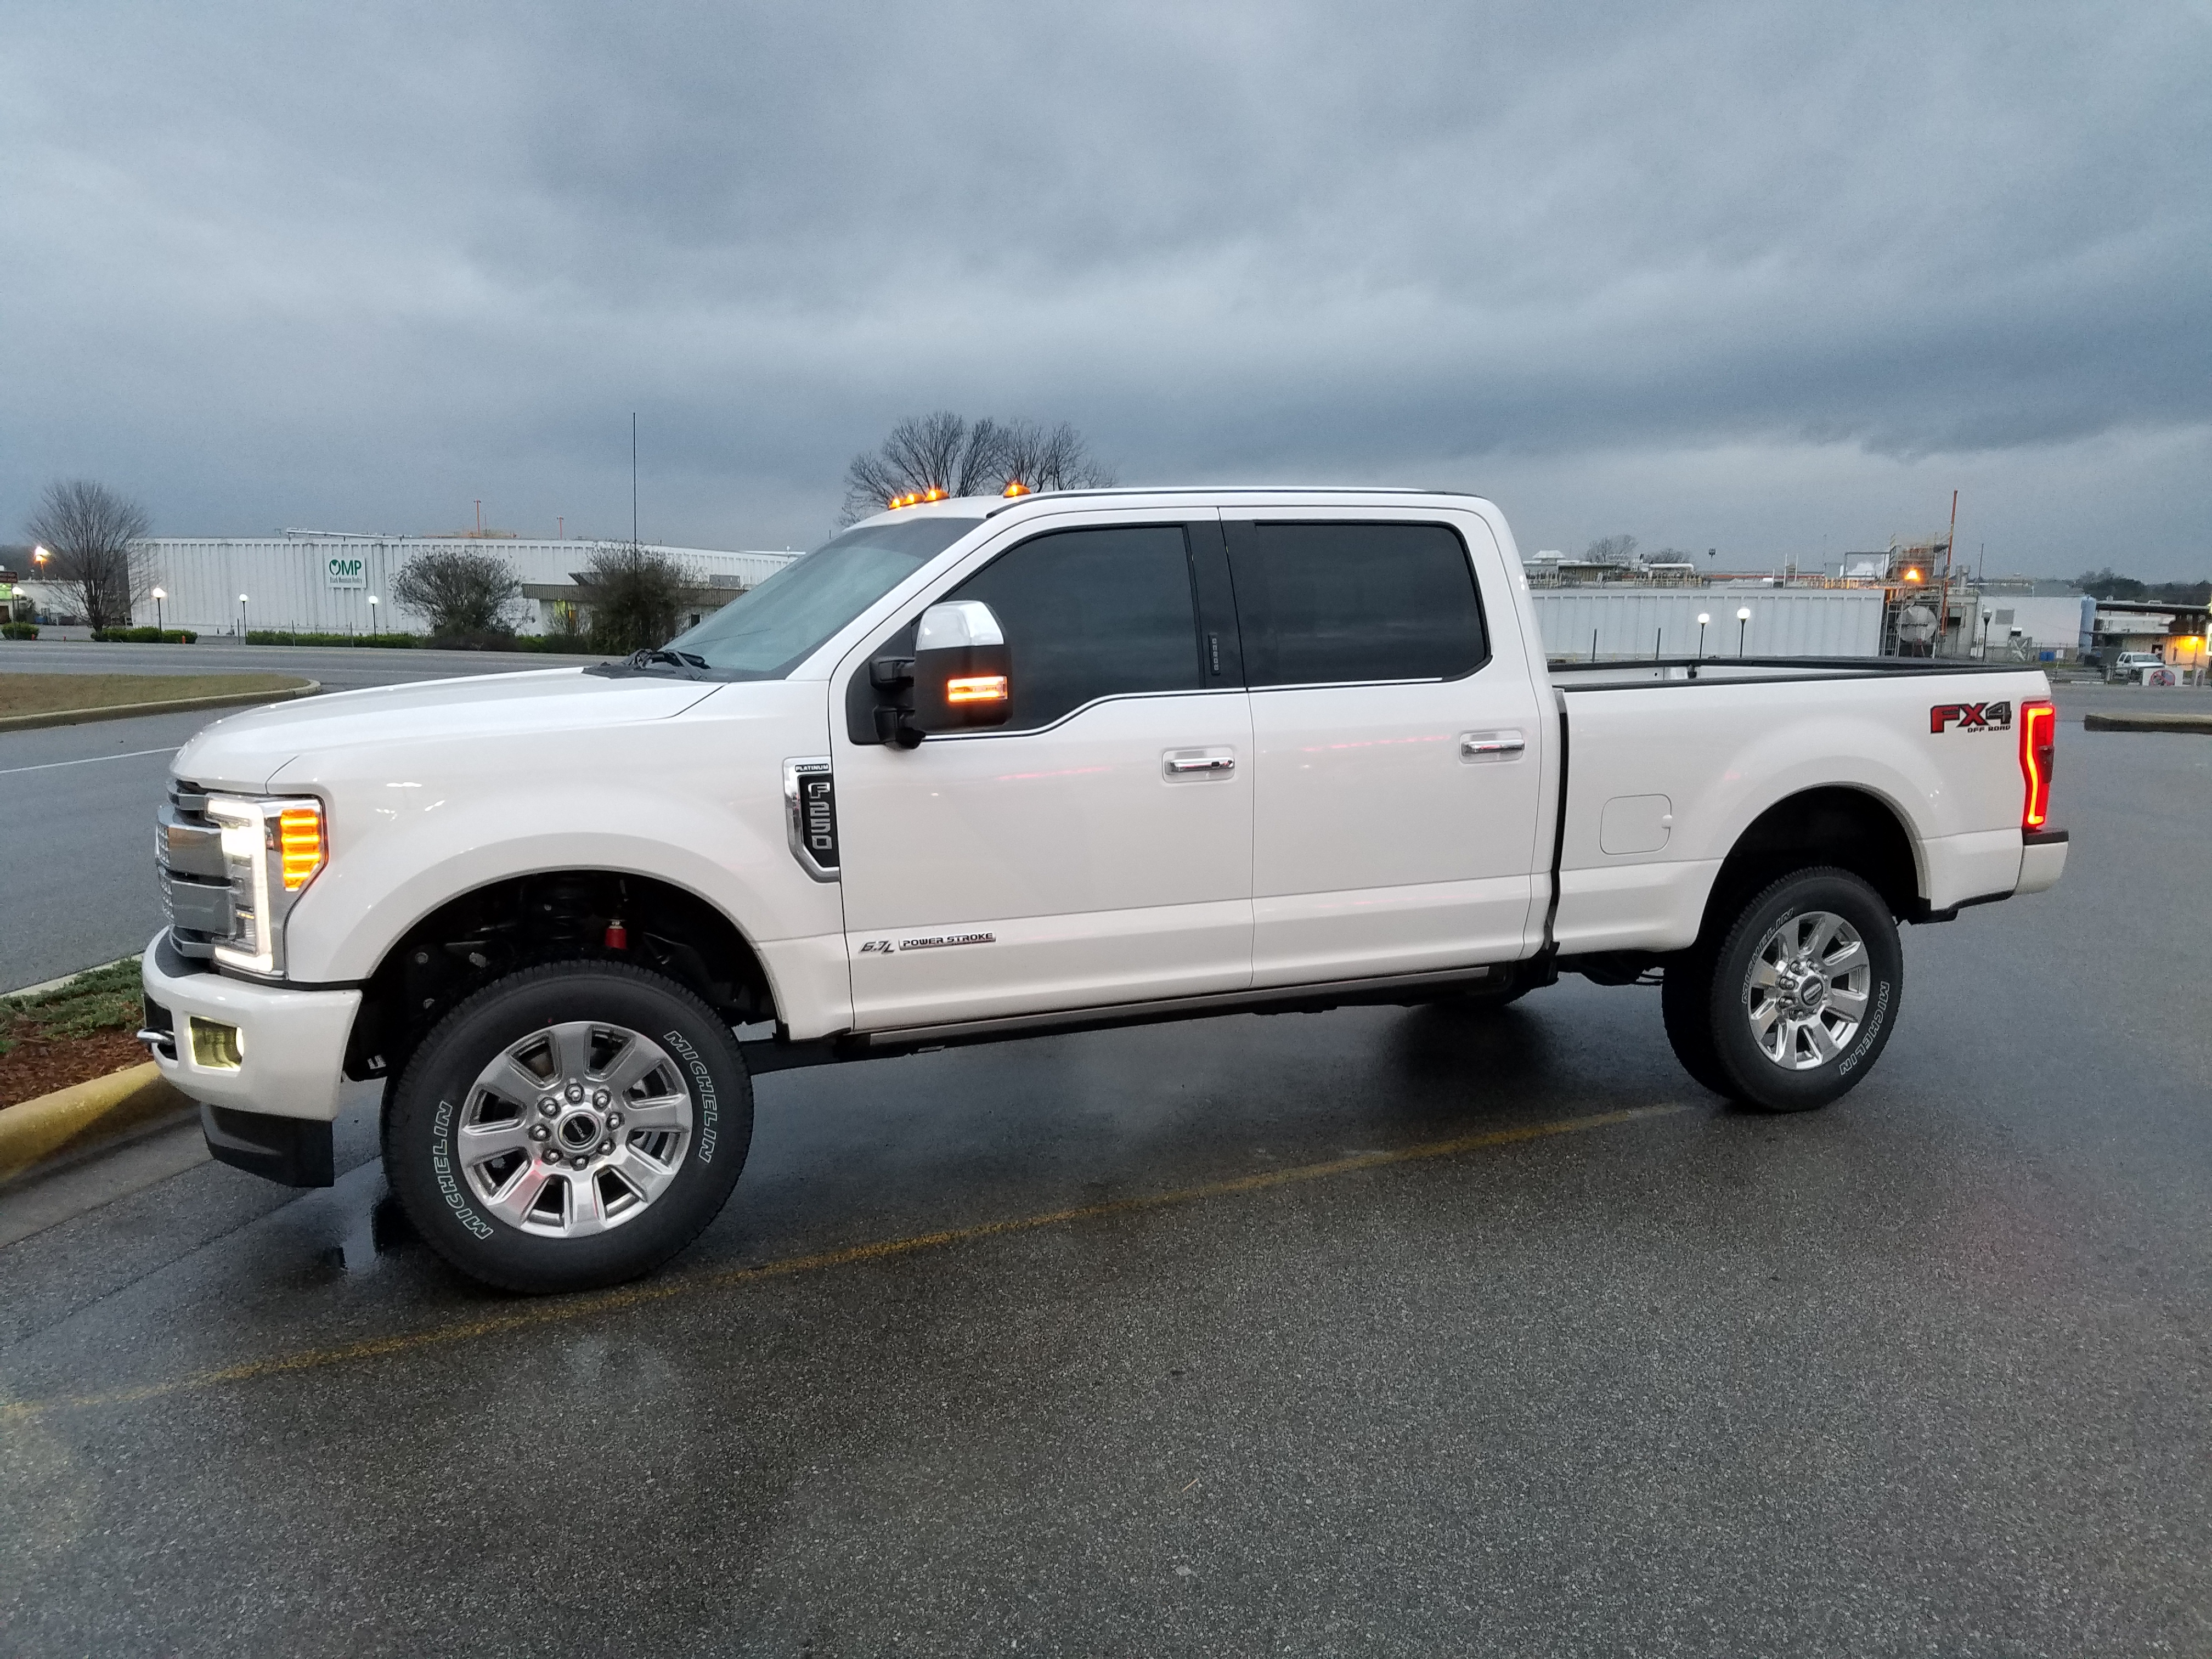 General At Tires >> BDS, Zone, or Readylift? - Ford Powerstroke Diesel Forum